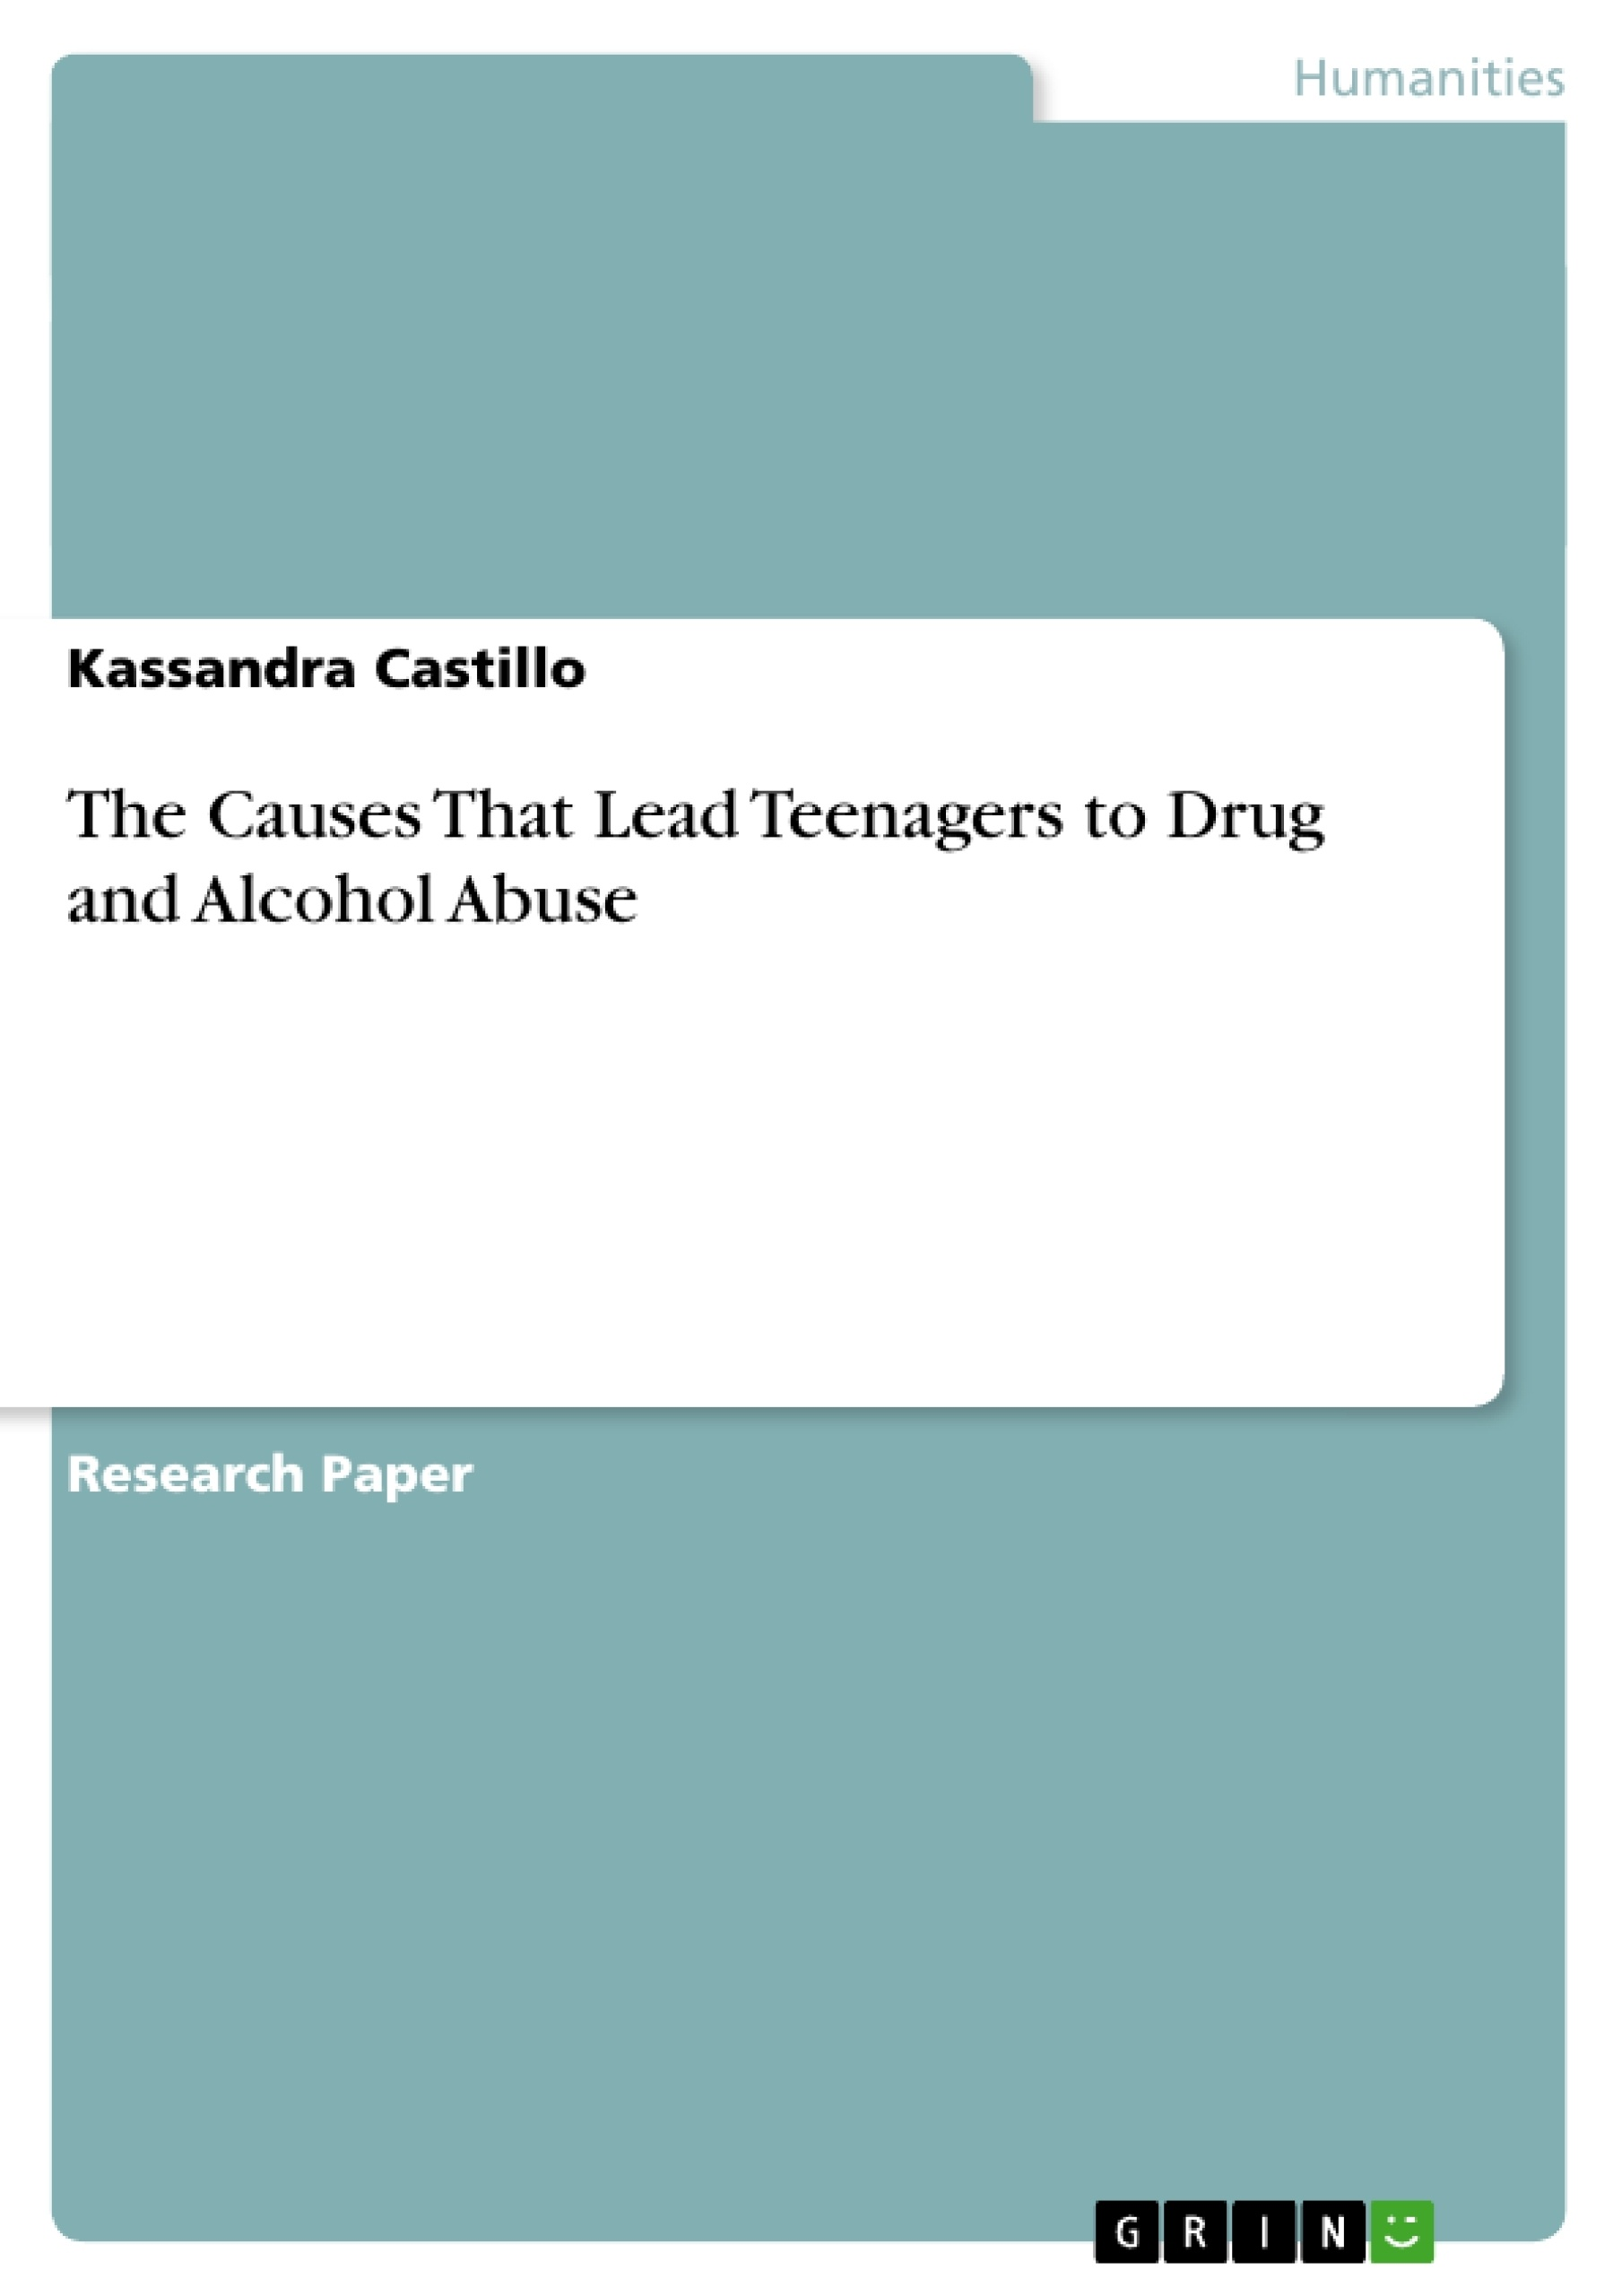 essay on drug thesis statement for drug and alcohol abuse title  title for drug addiction essay themenfindung dissertation pleasant river garden club similar to informative essay on